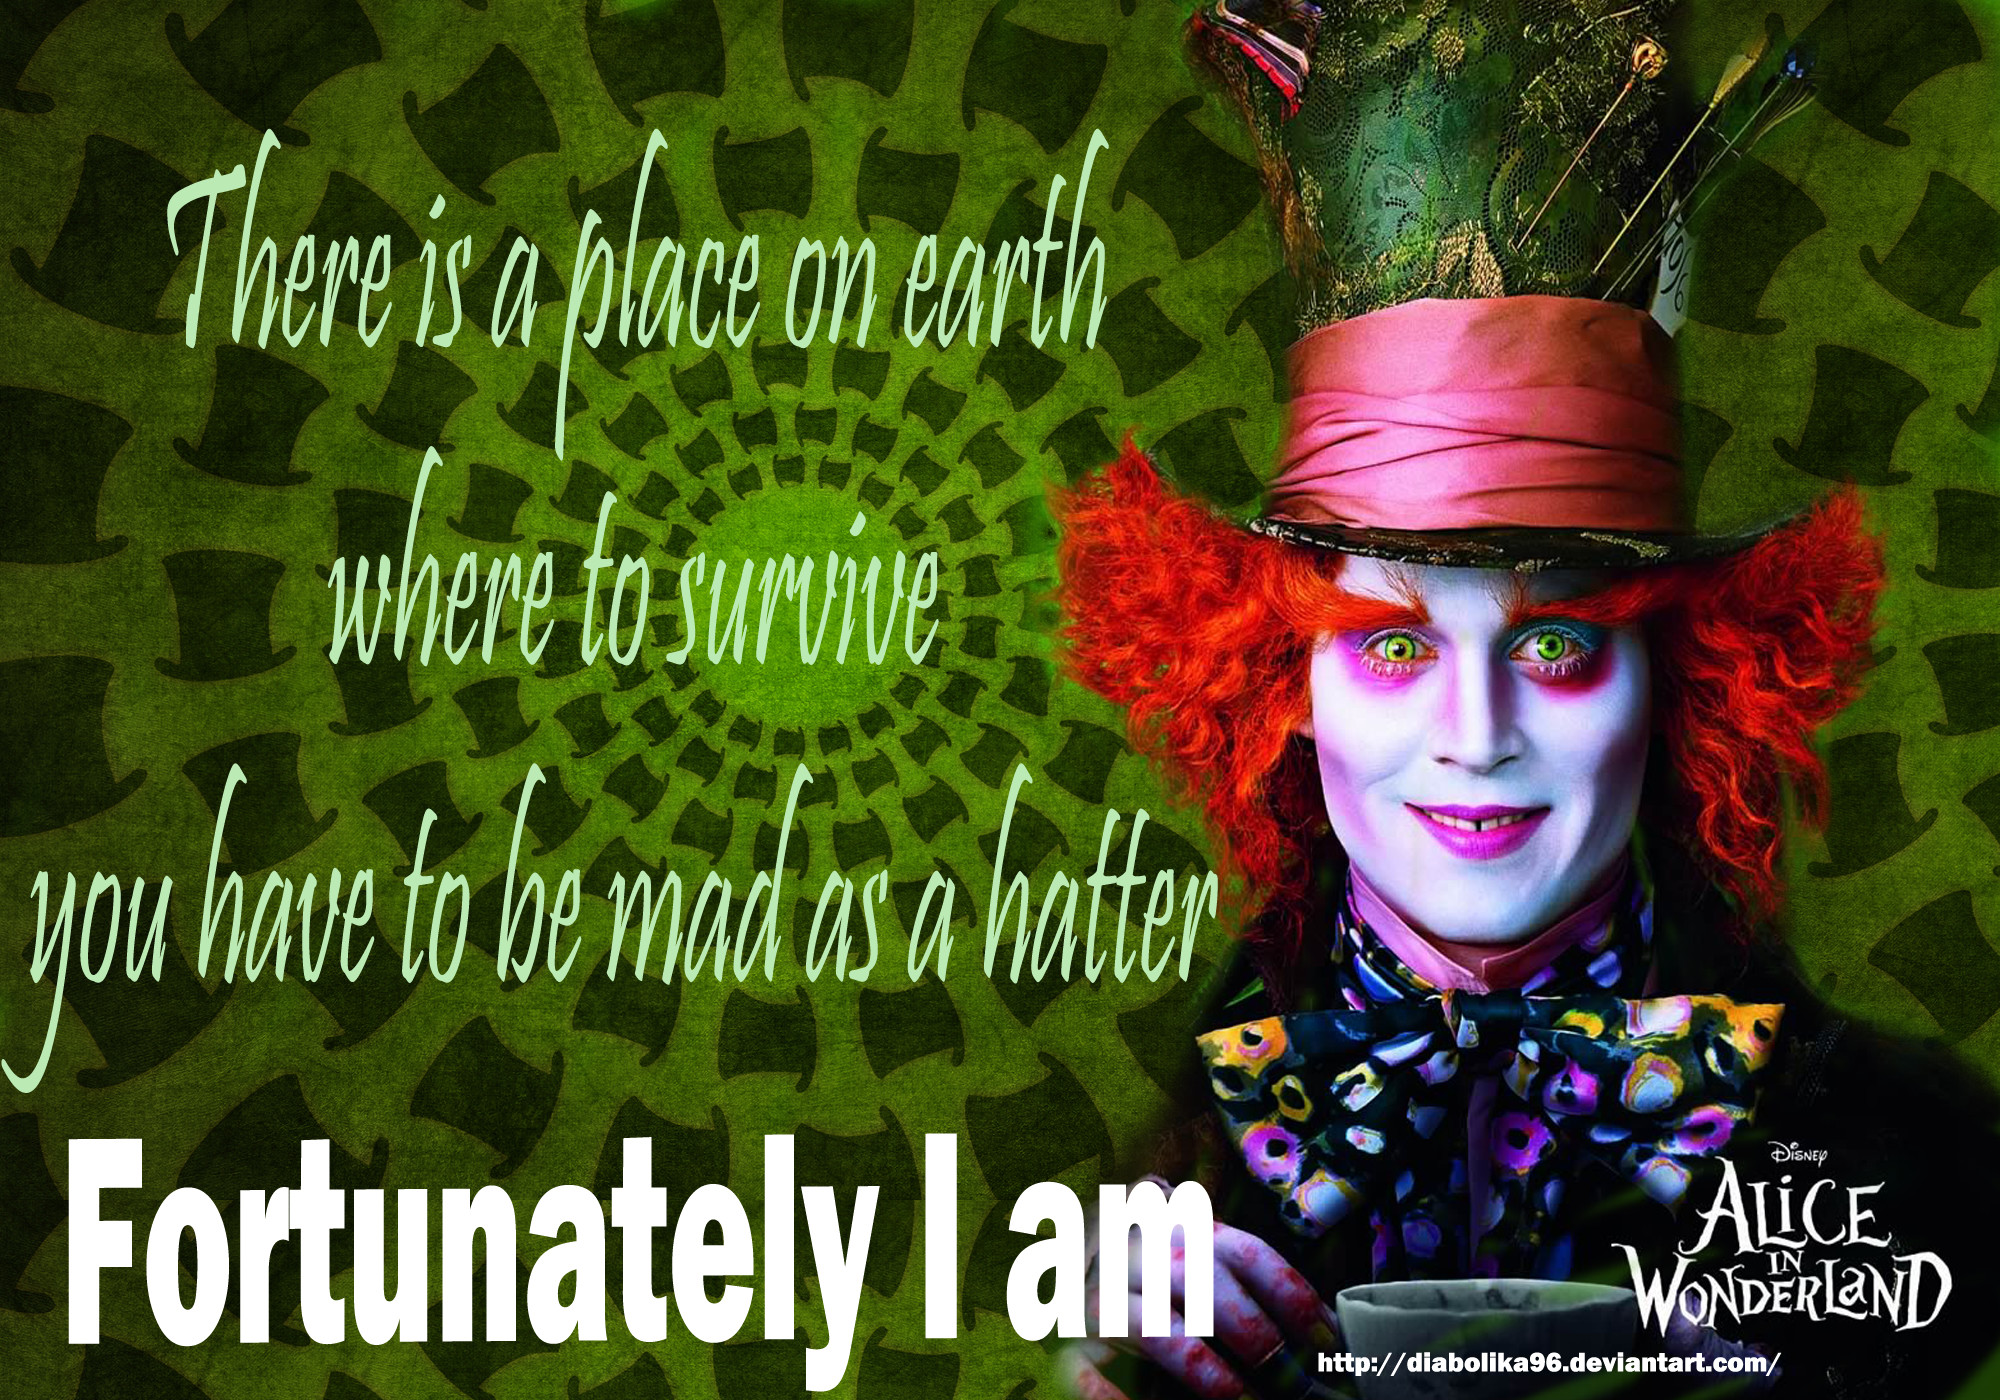 2000x1400 Mad Hatter Wallpapers Wallpaper | HD Wallpapers | Pinterest ...